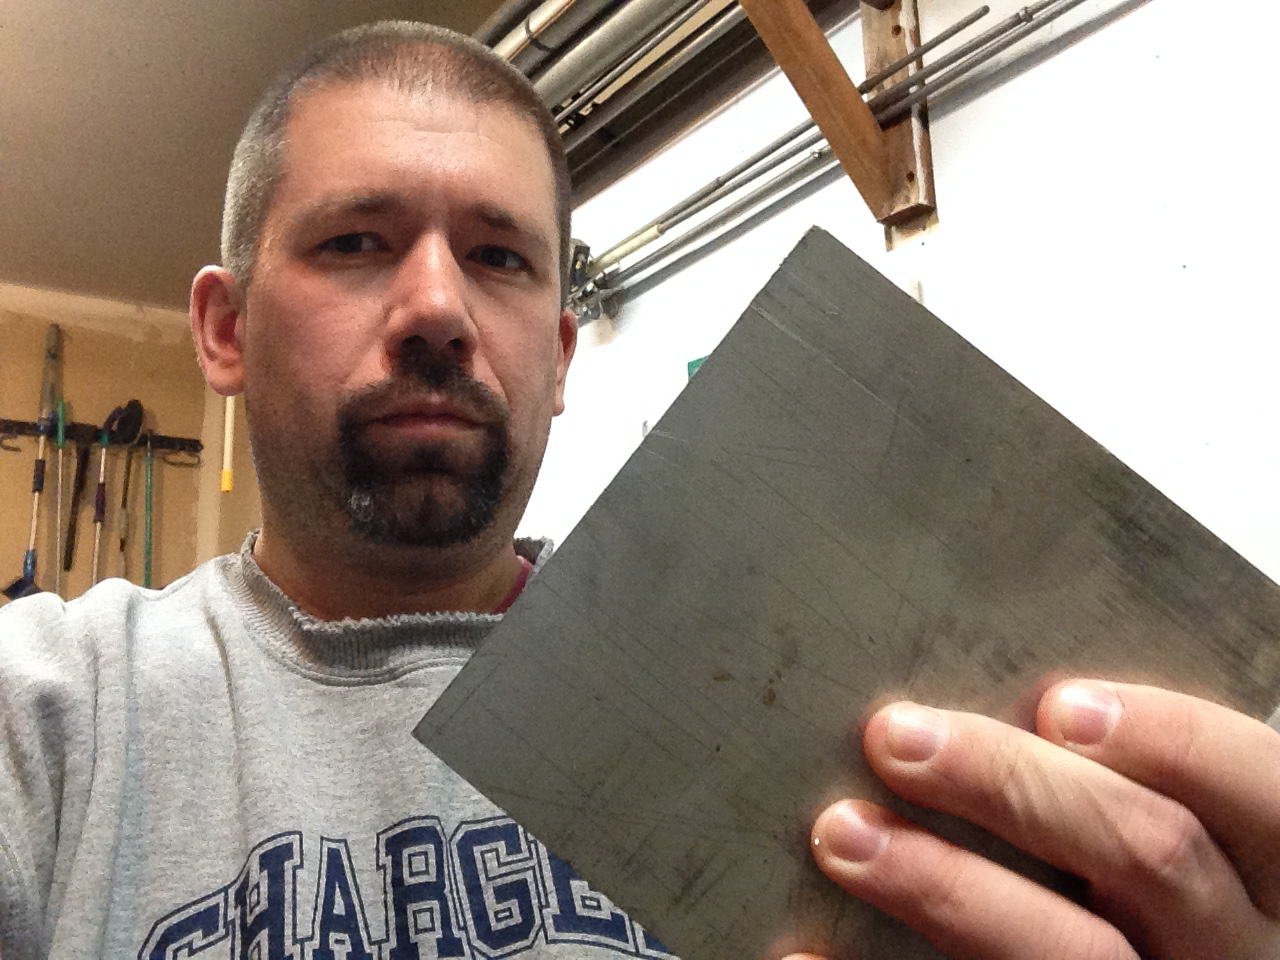 I am the proud owner of a 6lbs chunk of 6016 aluminum